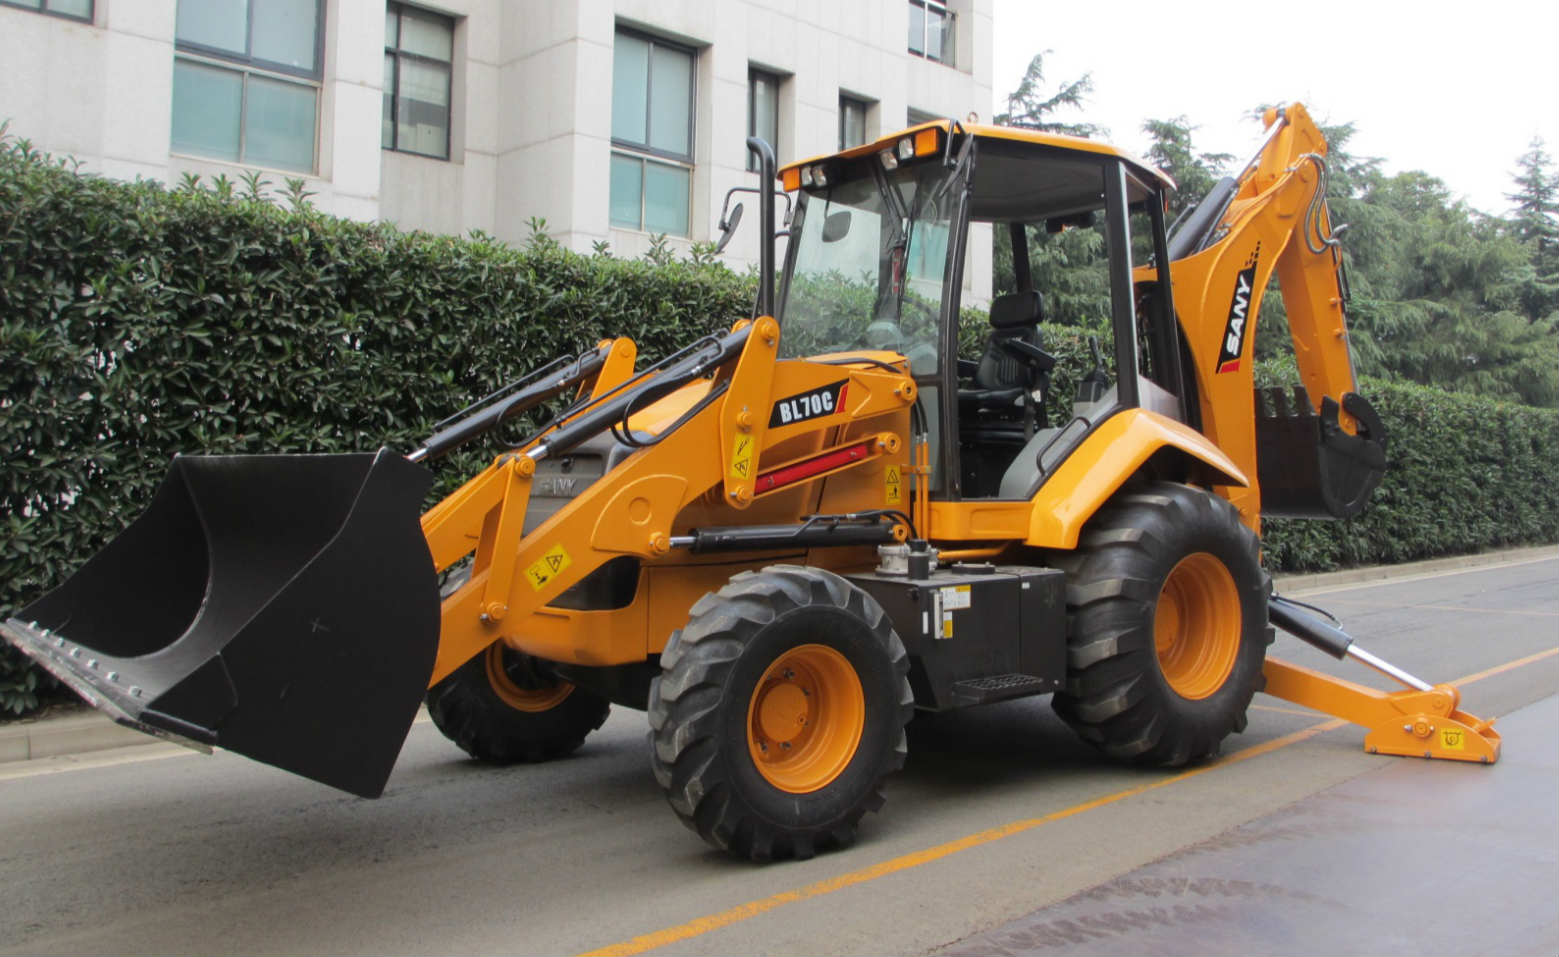 SANY wheeled excavator BL70C lands in the United States